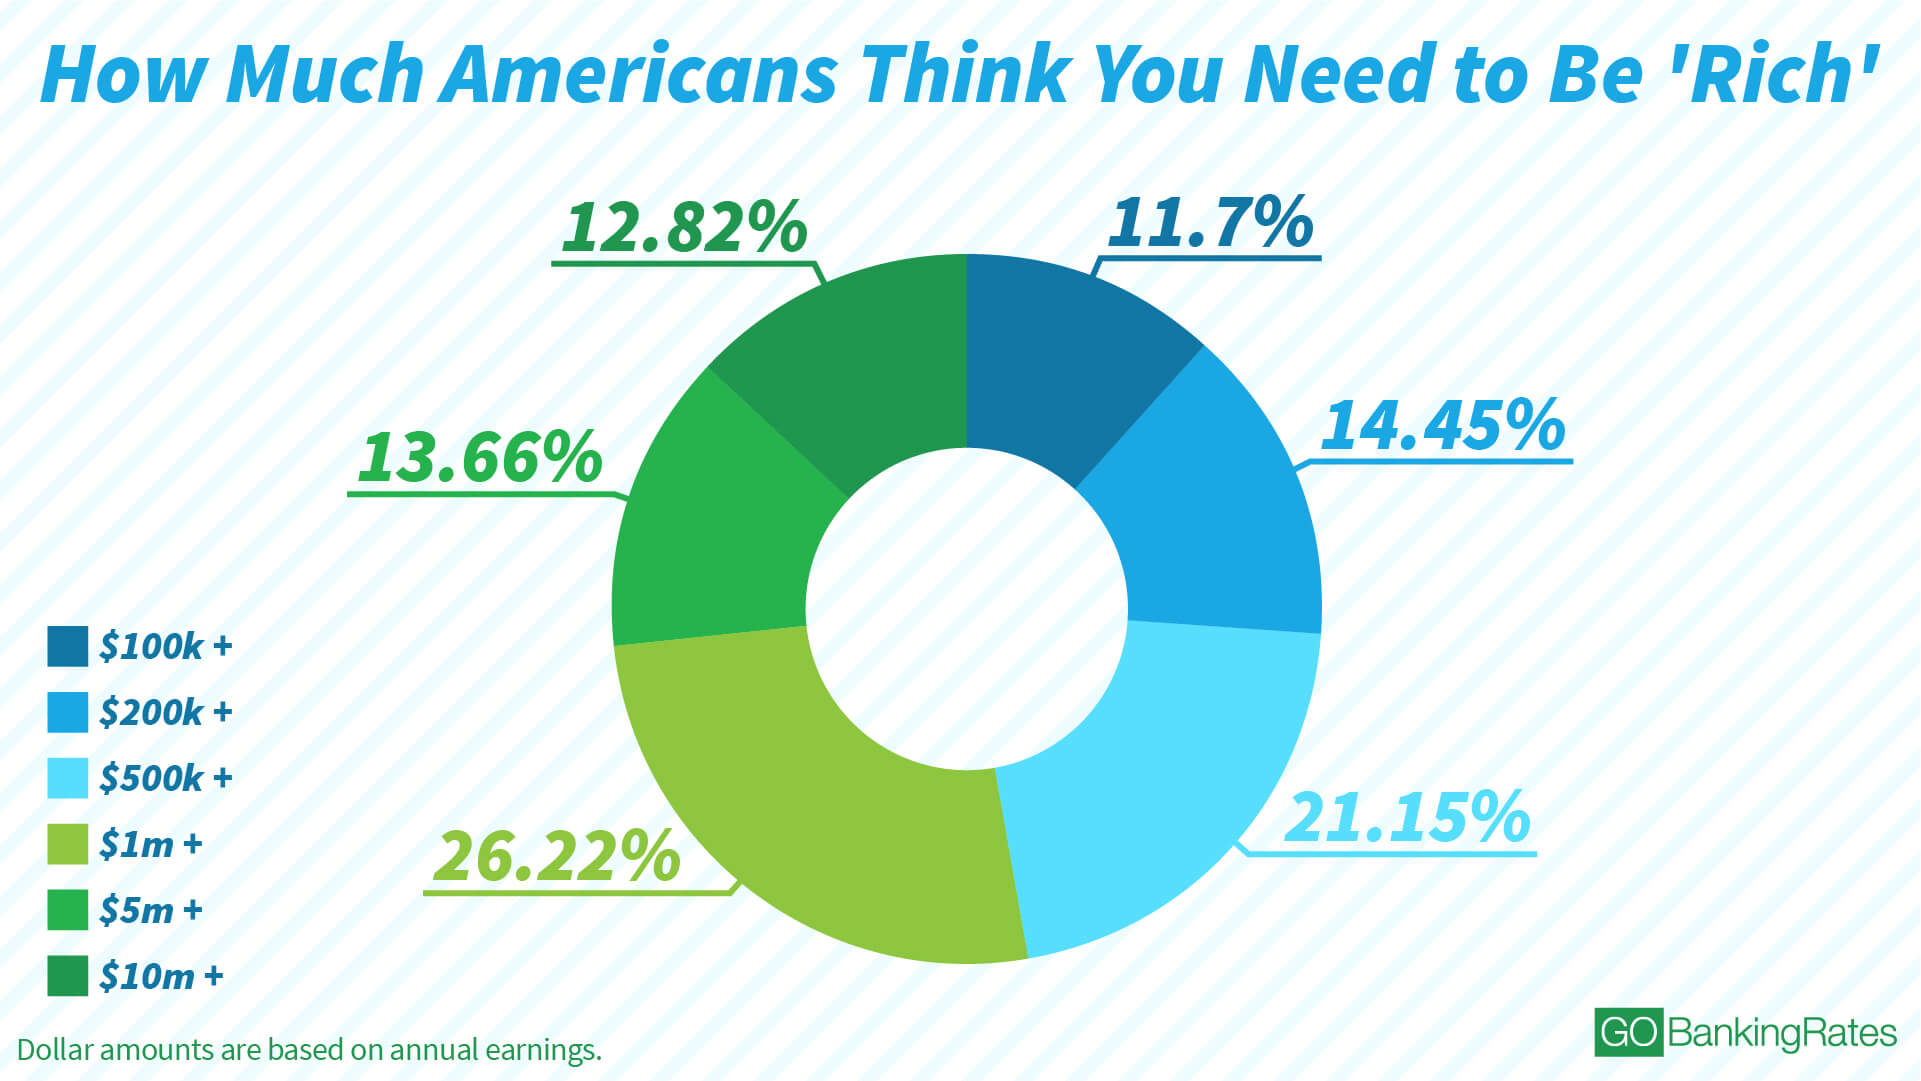 How much you need to earn to be rich in America